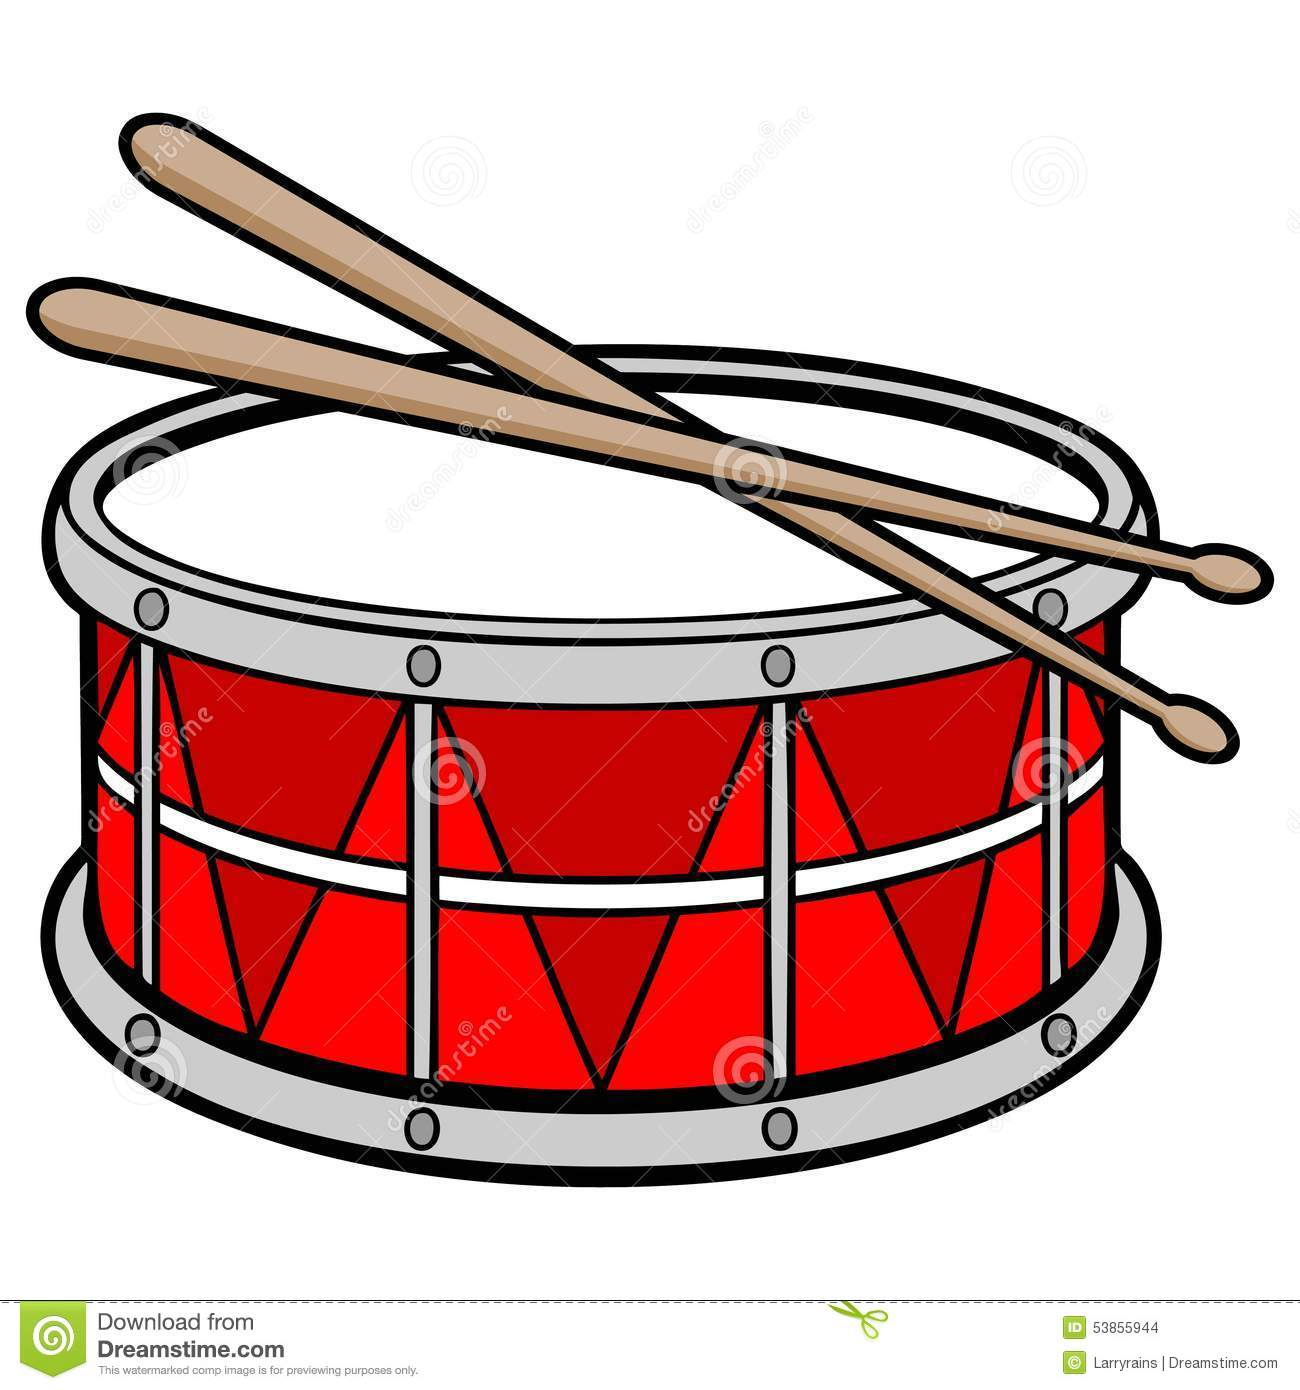 drum stock illustrations 20 147 drum stock illustrations rh dreamstime com drum clipart free drum clipart free